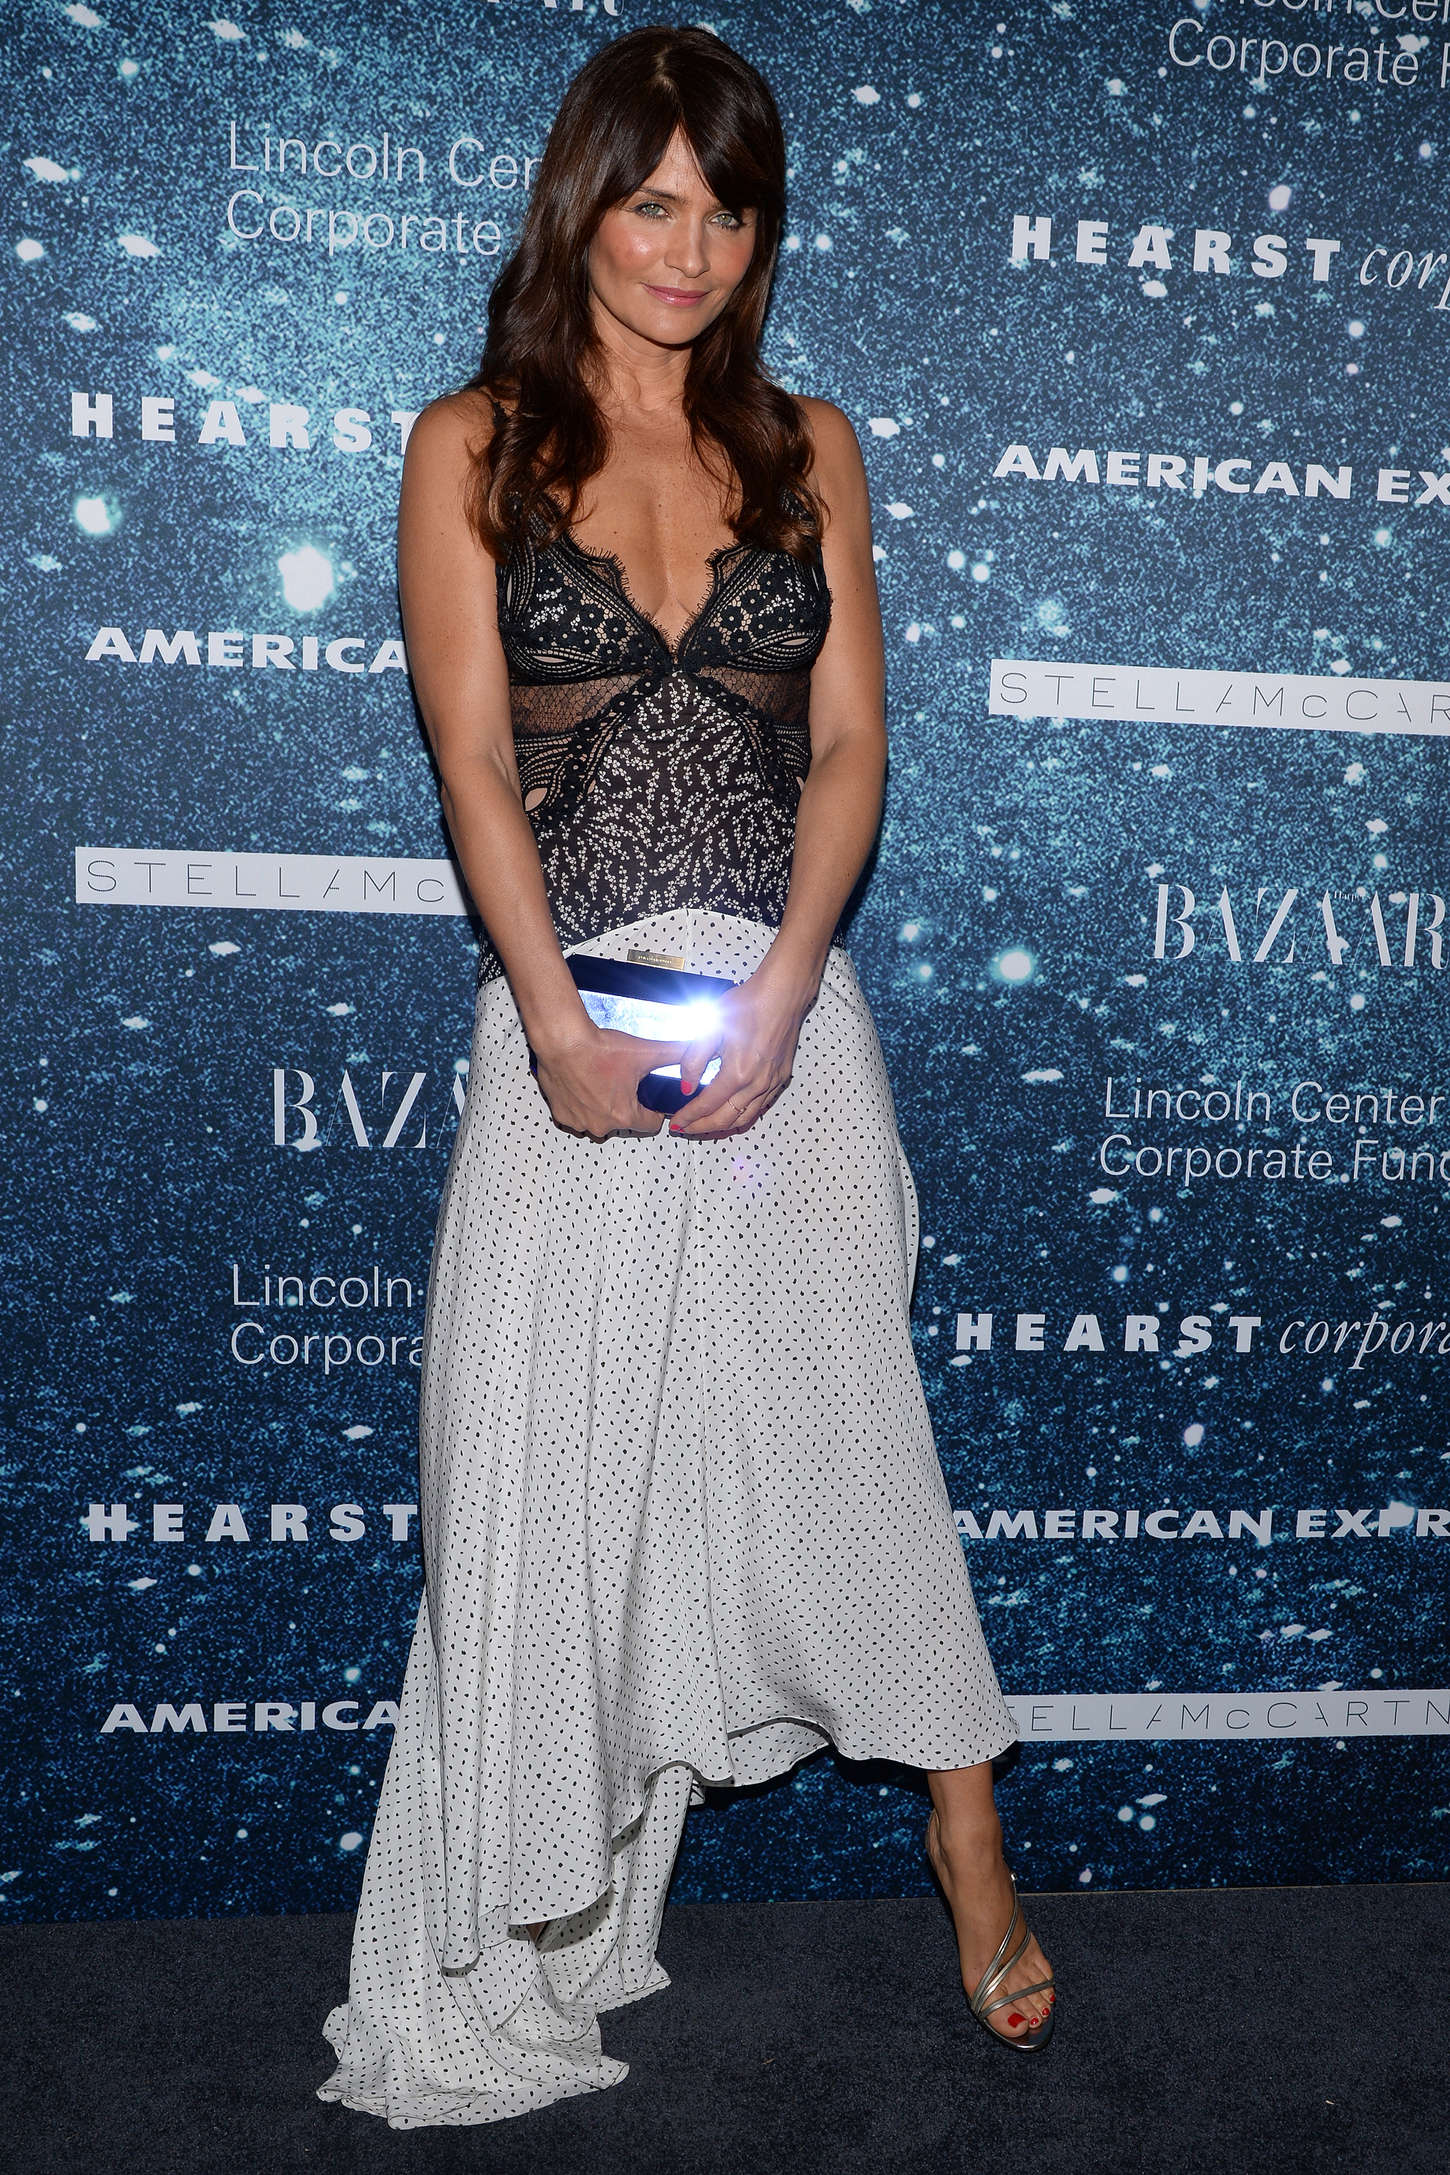 Helena Christensen Womens Leadership Award Honoring Stella McCartney in New York